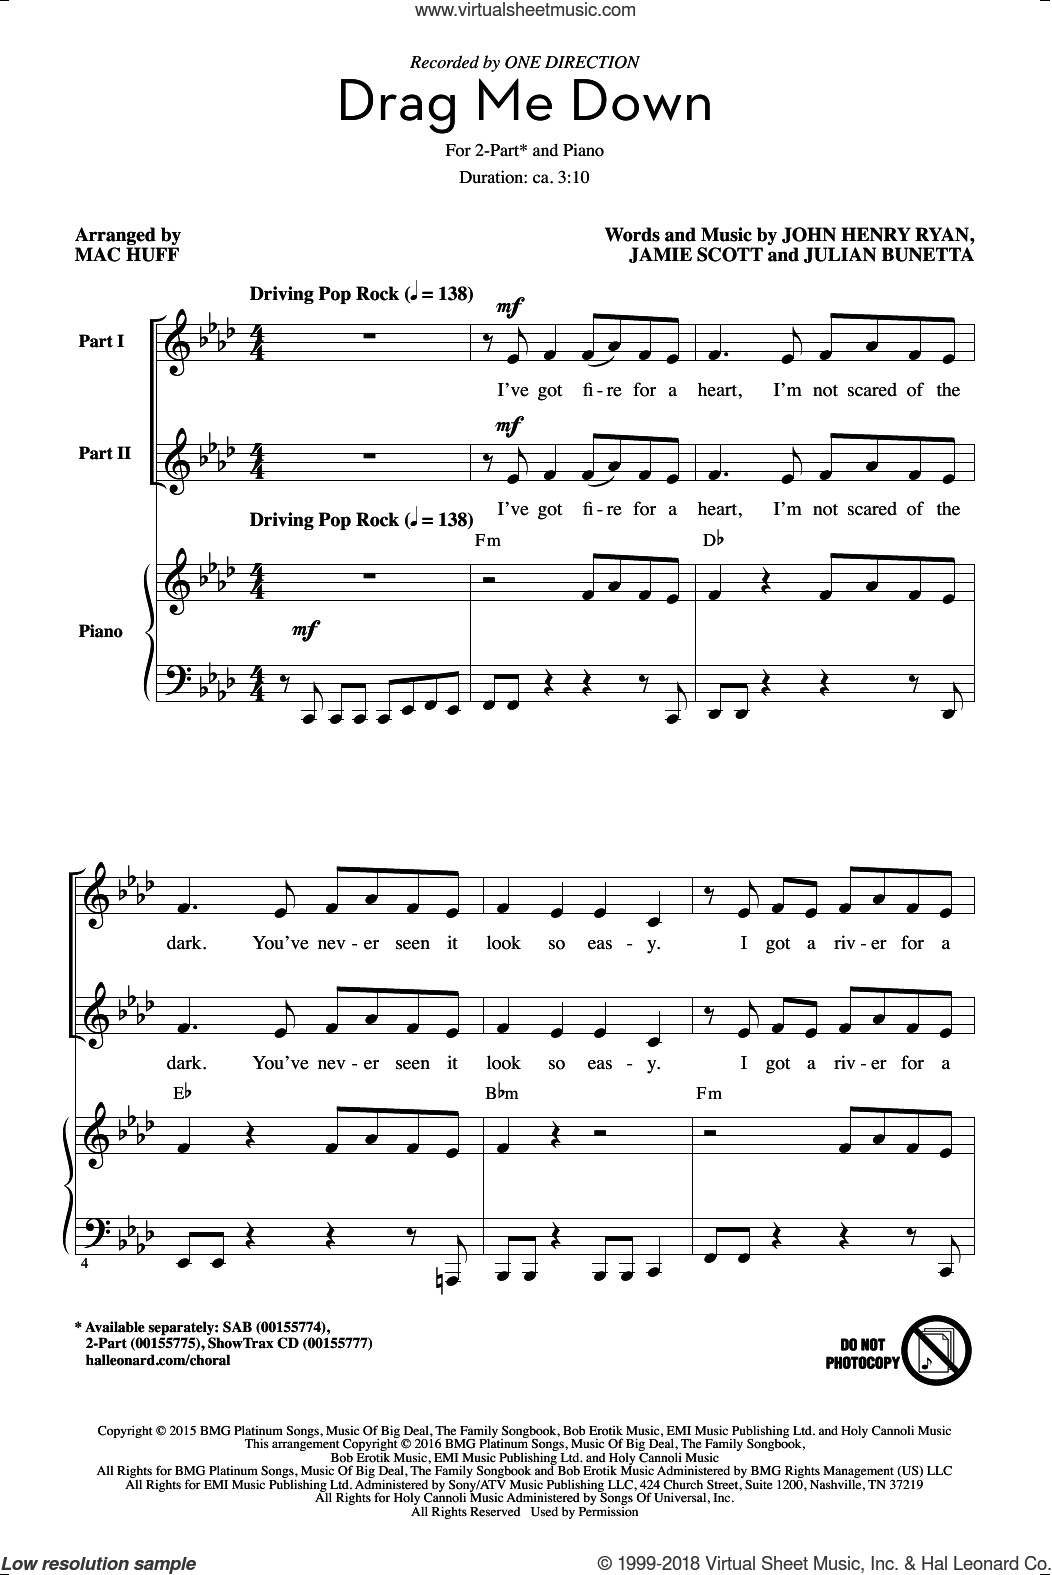 Drag Me Down sheet music for choir (2-Part) by Jamie Scott, Mac Huff, One Direction, John Henry Ryan and Julian Bunetta, intermediate duet